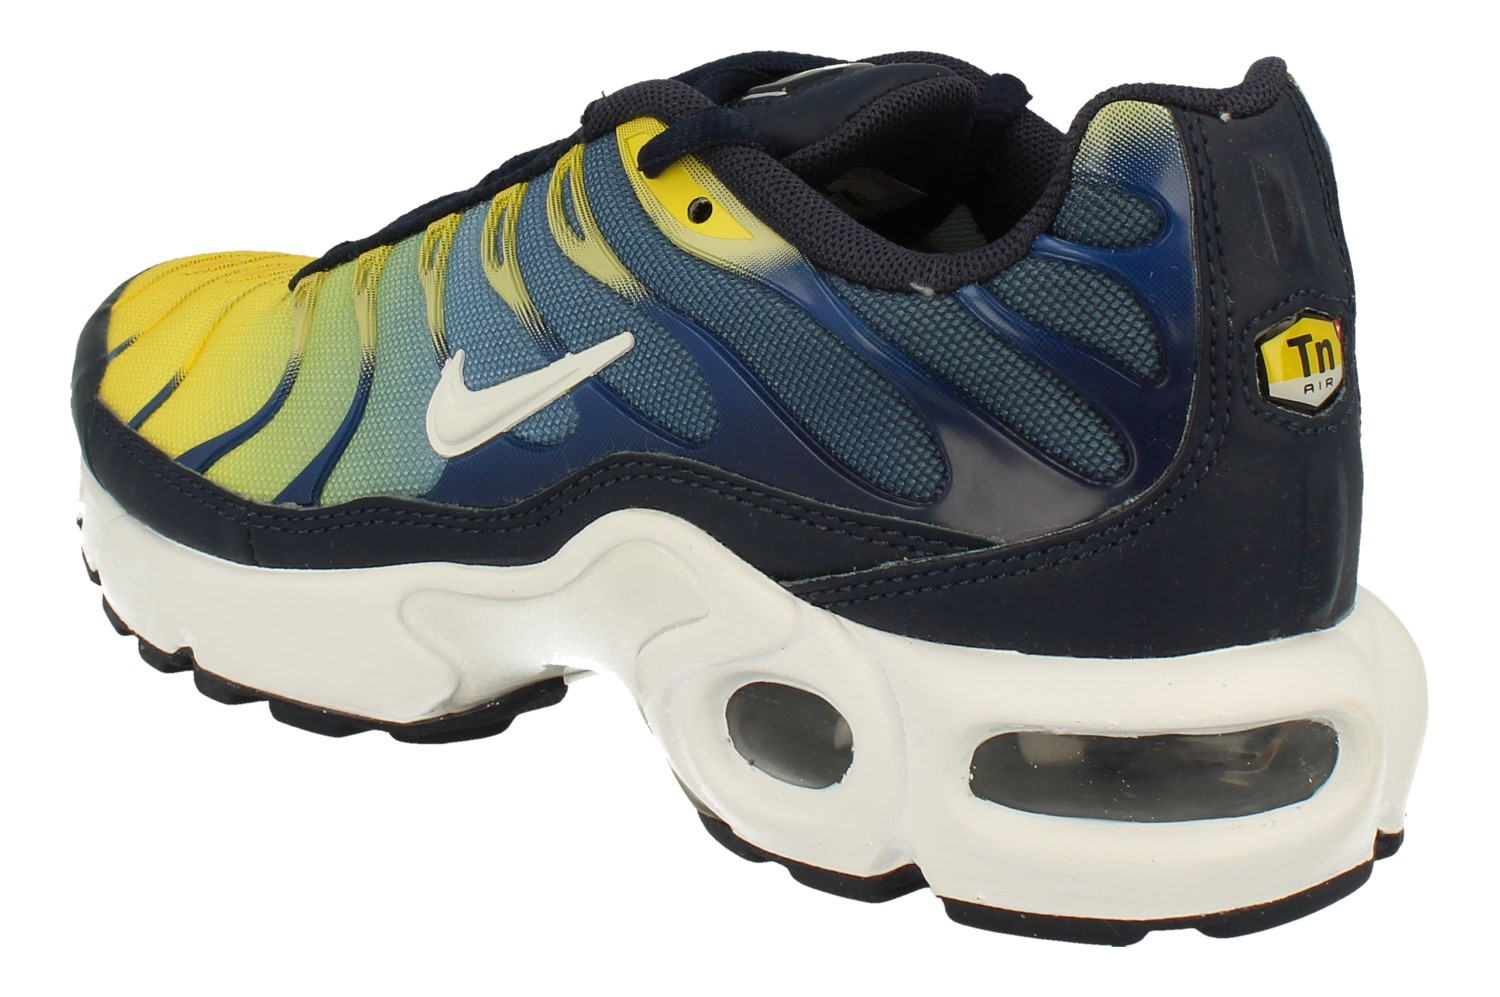 new arrivals d3f8b e714f Nike Air Max Plus GS Tn Tuned 1 Trainers 655020 Sneakers Shoes 420